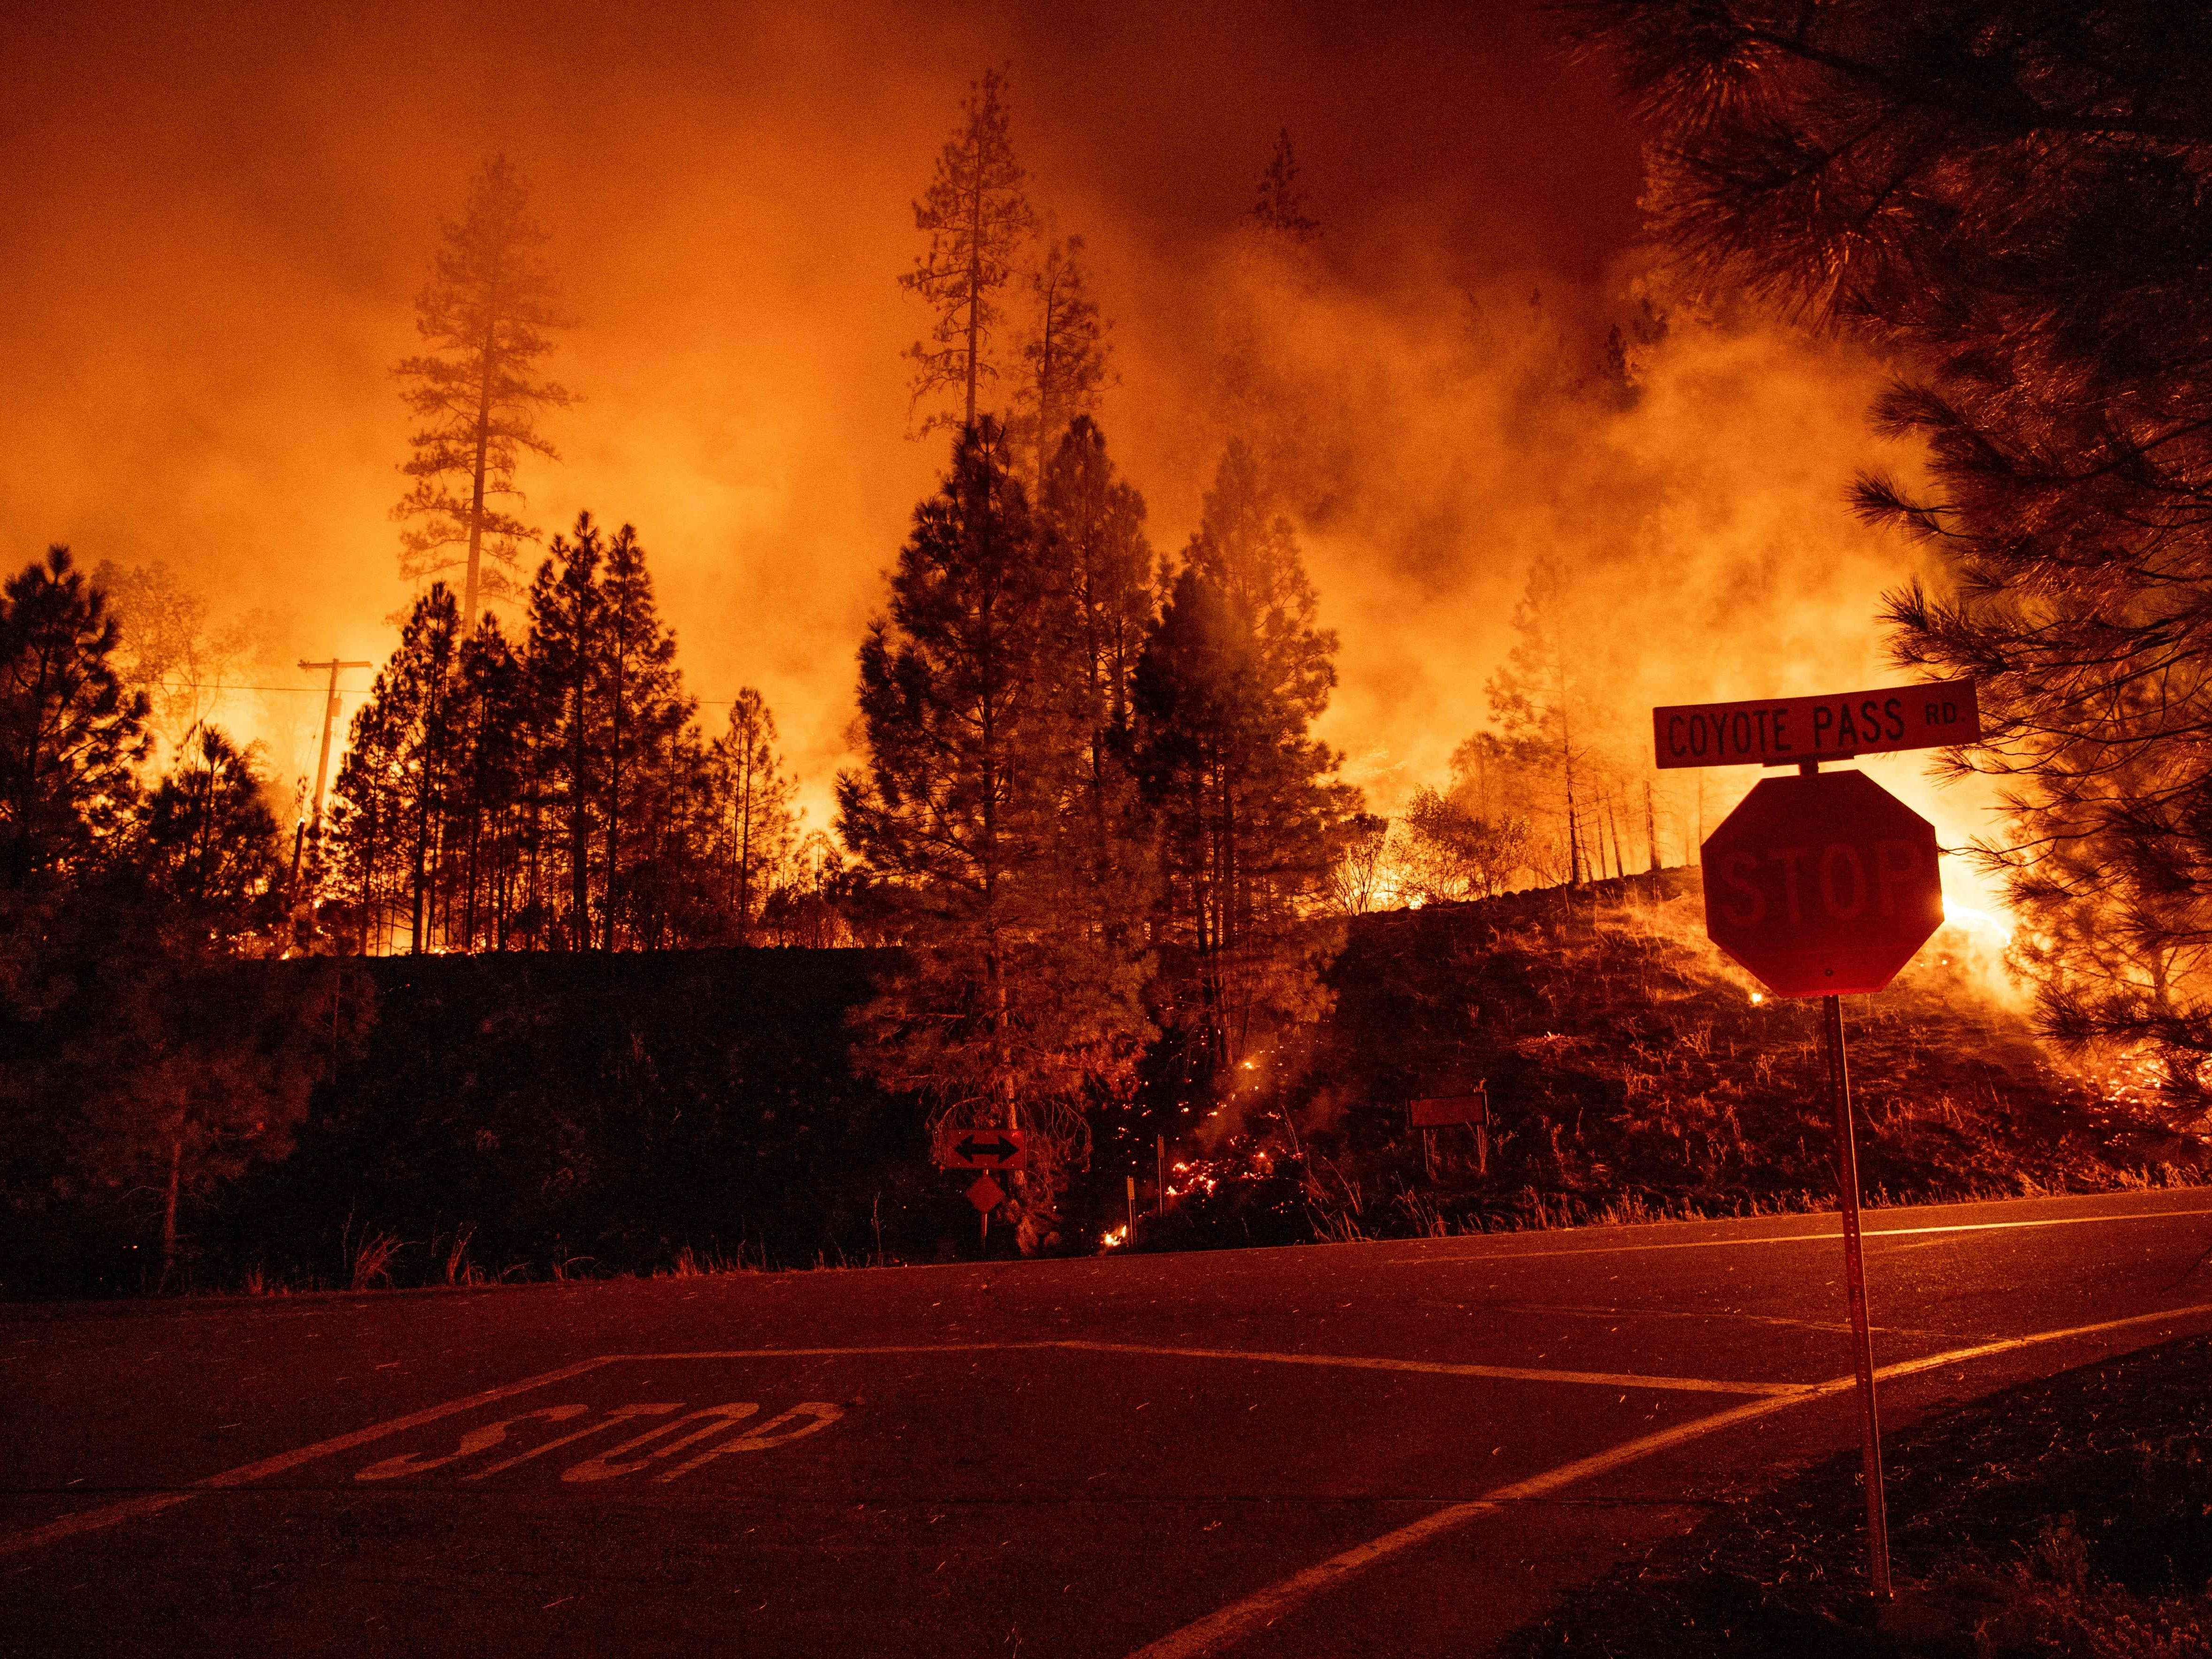 Fire surrounds an intersection during the Delta Fire in near Delta, Calif. on Sept. 6, 2018.